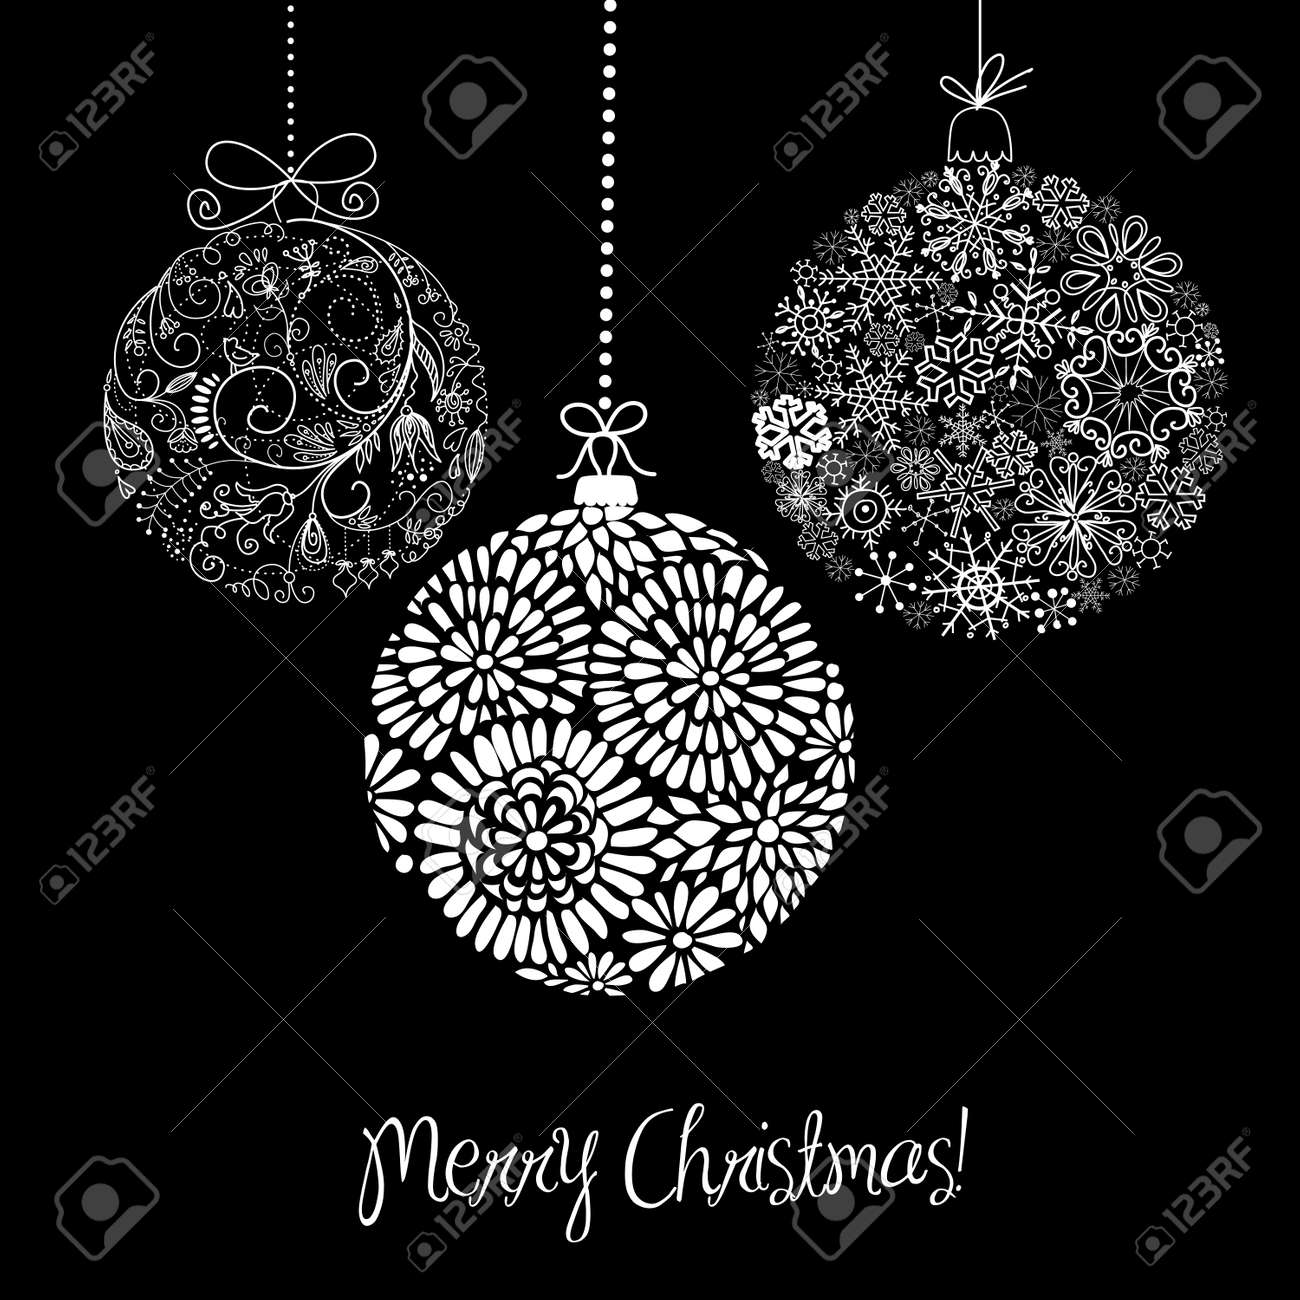 Christmas ornament black and white - Black And White Christmas Ornaments Stock Vector 16681188